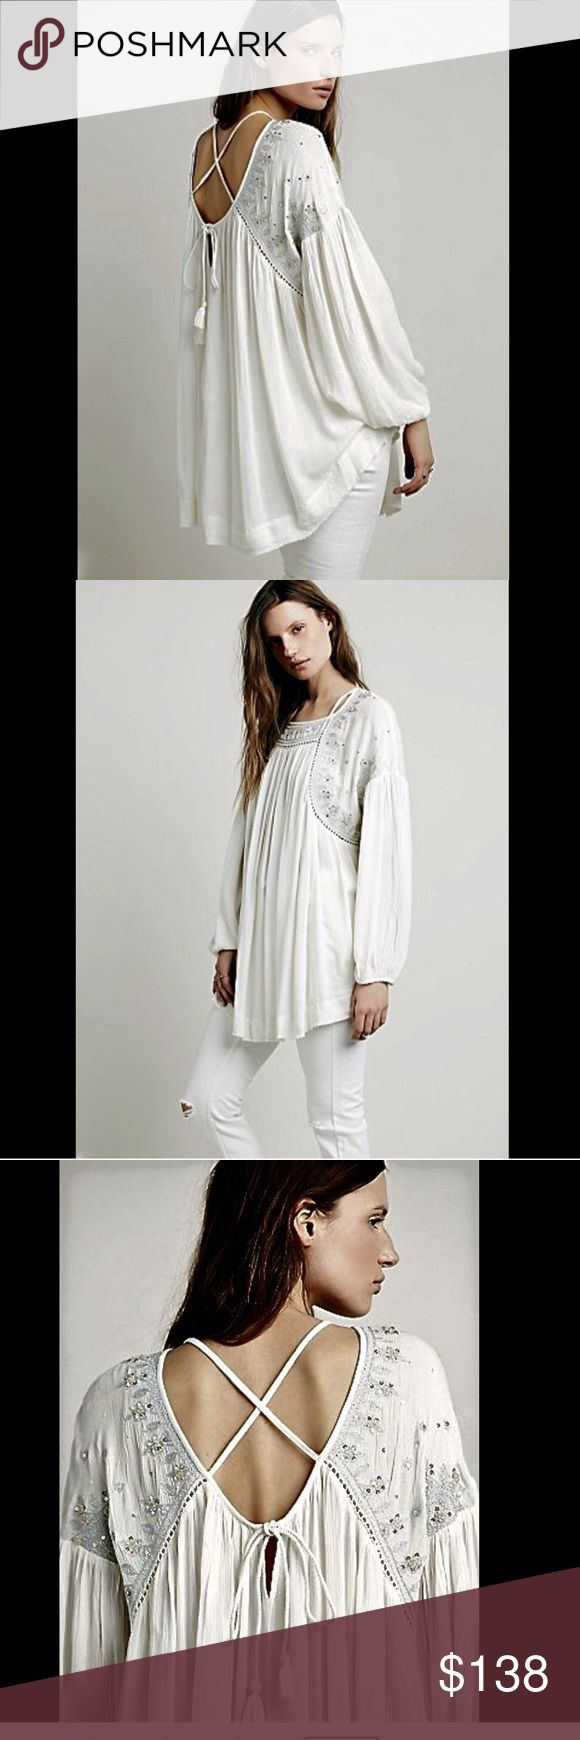 """Free People ivory white Swingy Embellished  Top S Free People ivory white Swingy Embellished Strappy Back Tunic Top Oversized & shapeless drapy flowy rayon crinkled crepe Silver metallic embroider, beadwork & sequins on the yoke & shoulders Features eyelet trim, a slinky strappy back with tassel ties, gathered cuffs full swing body longer in middle with raw hem New Without Tags  *  Size:  Small  * there is a dot on the tag to prevent store return  measures: 52"""" around bust 30"""" long in middle…"""